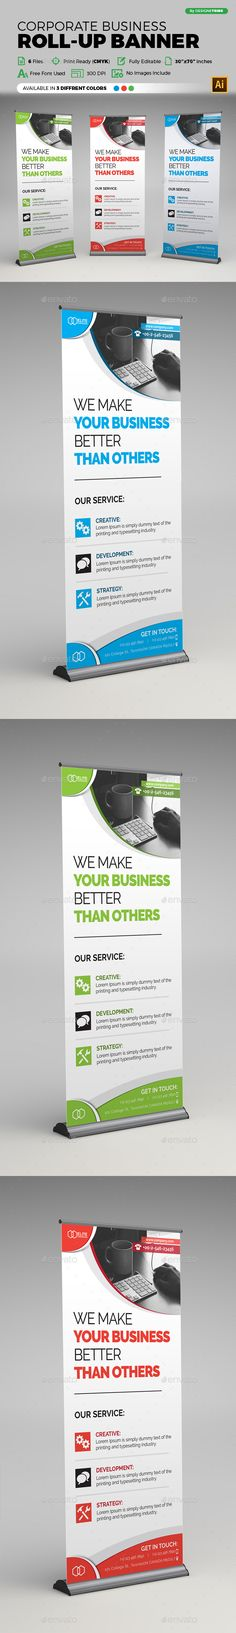 Corporate Business Roll-Up Banner Design Template - Signage Print Template Vector EPS, AI Illustrator, Download here: http://graphicriver.net/item/corporate-business-rollup-banner/16894764?s_rank=15&ref=yinkira